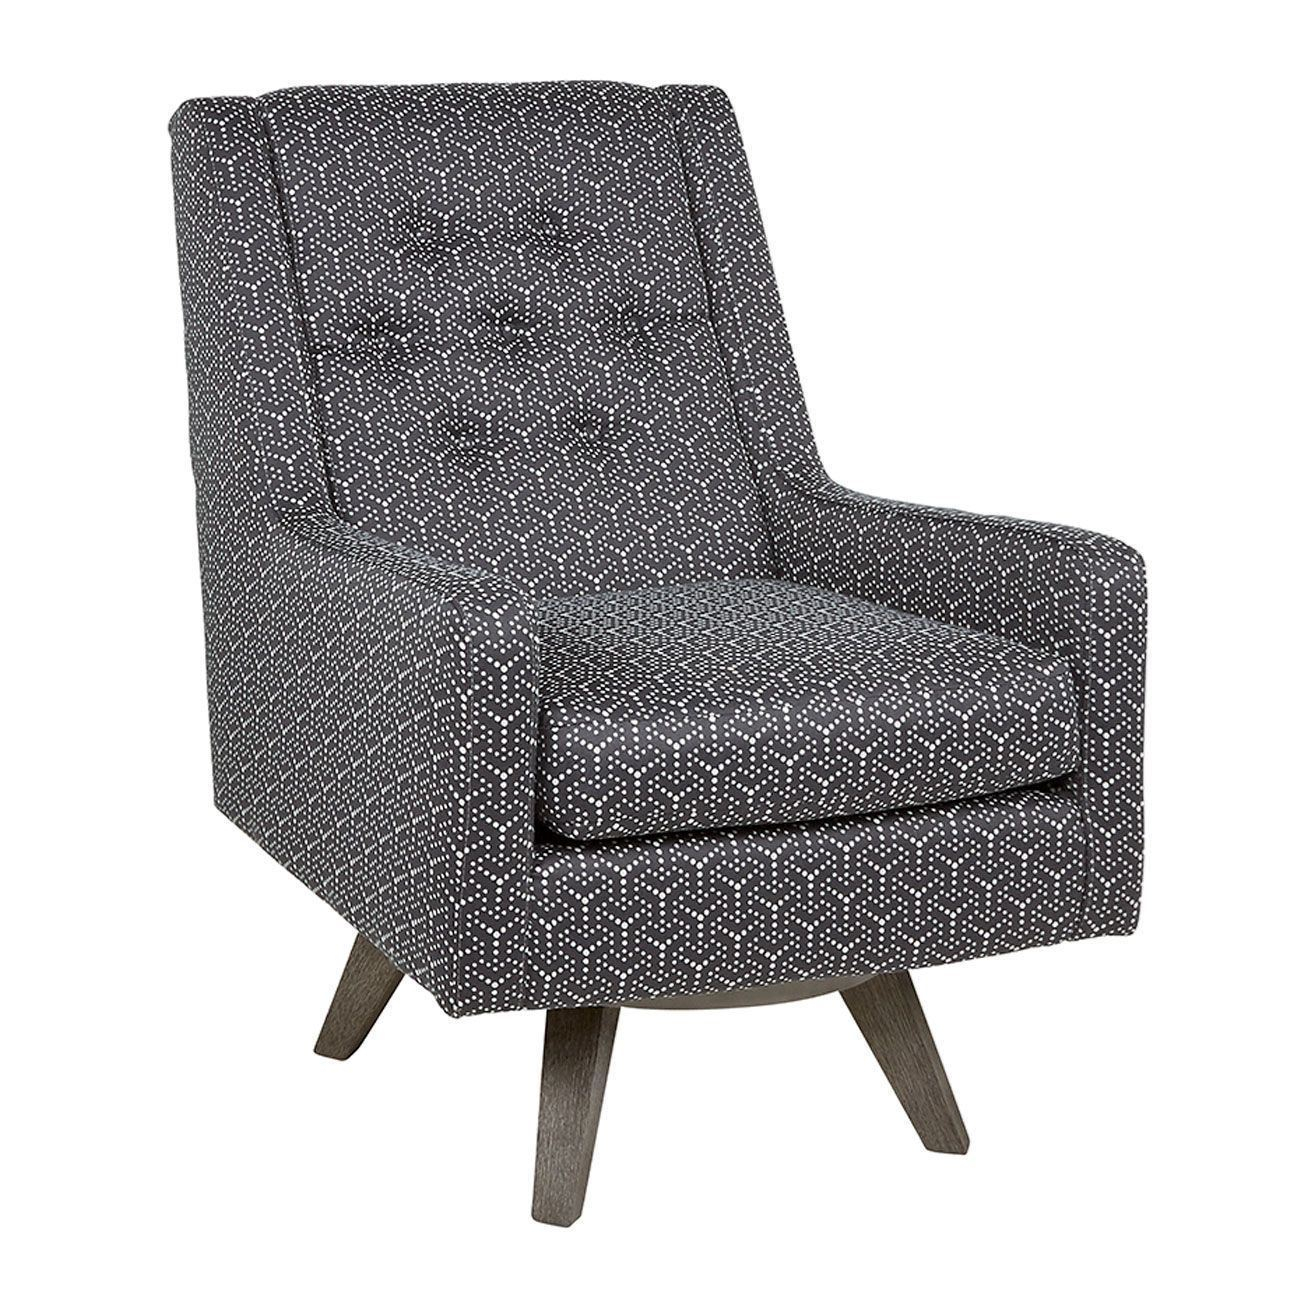 Kale Charcoal Swivel Chair – Woodstock Furniture & Mattress For Charcoal Swivel Chairs (View 4 of 20)